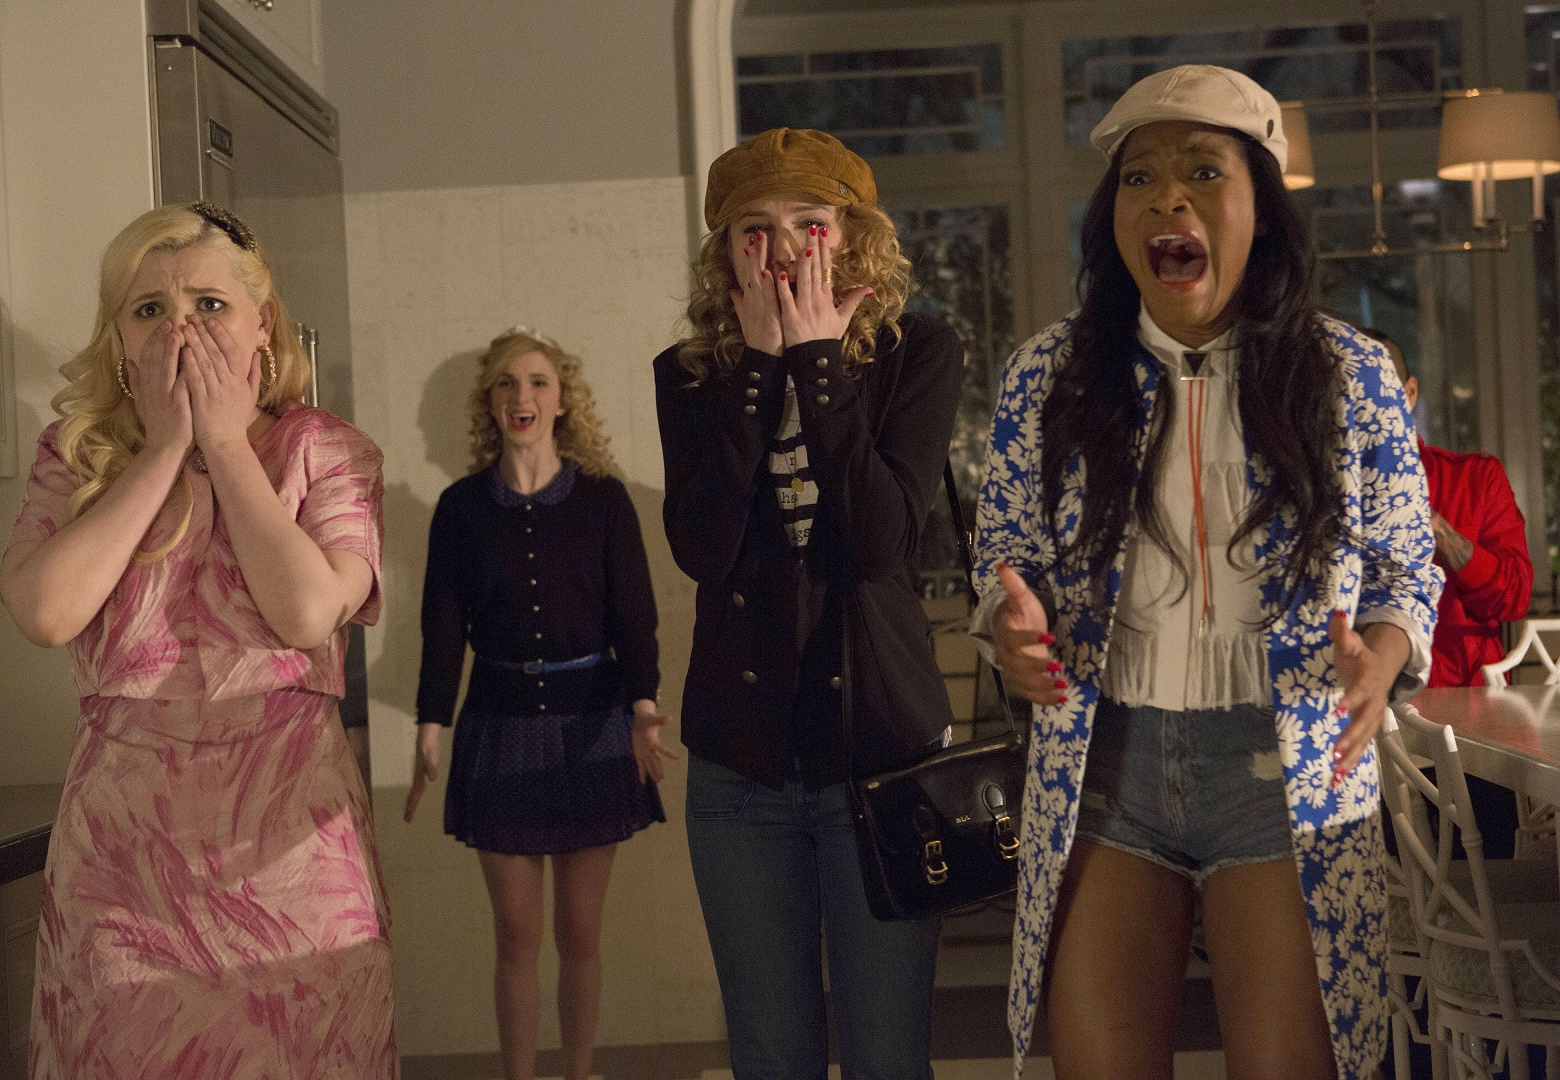 FOX-Scream Queens-Season 1 (3)